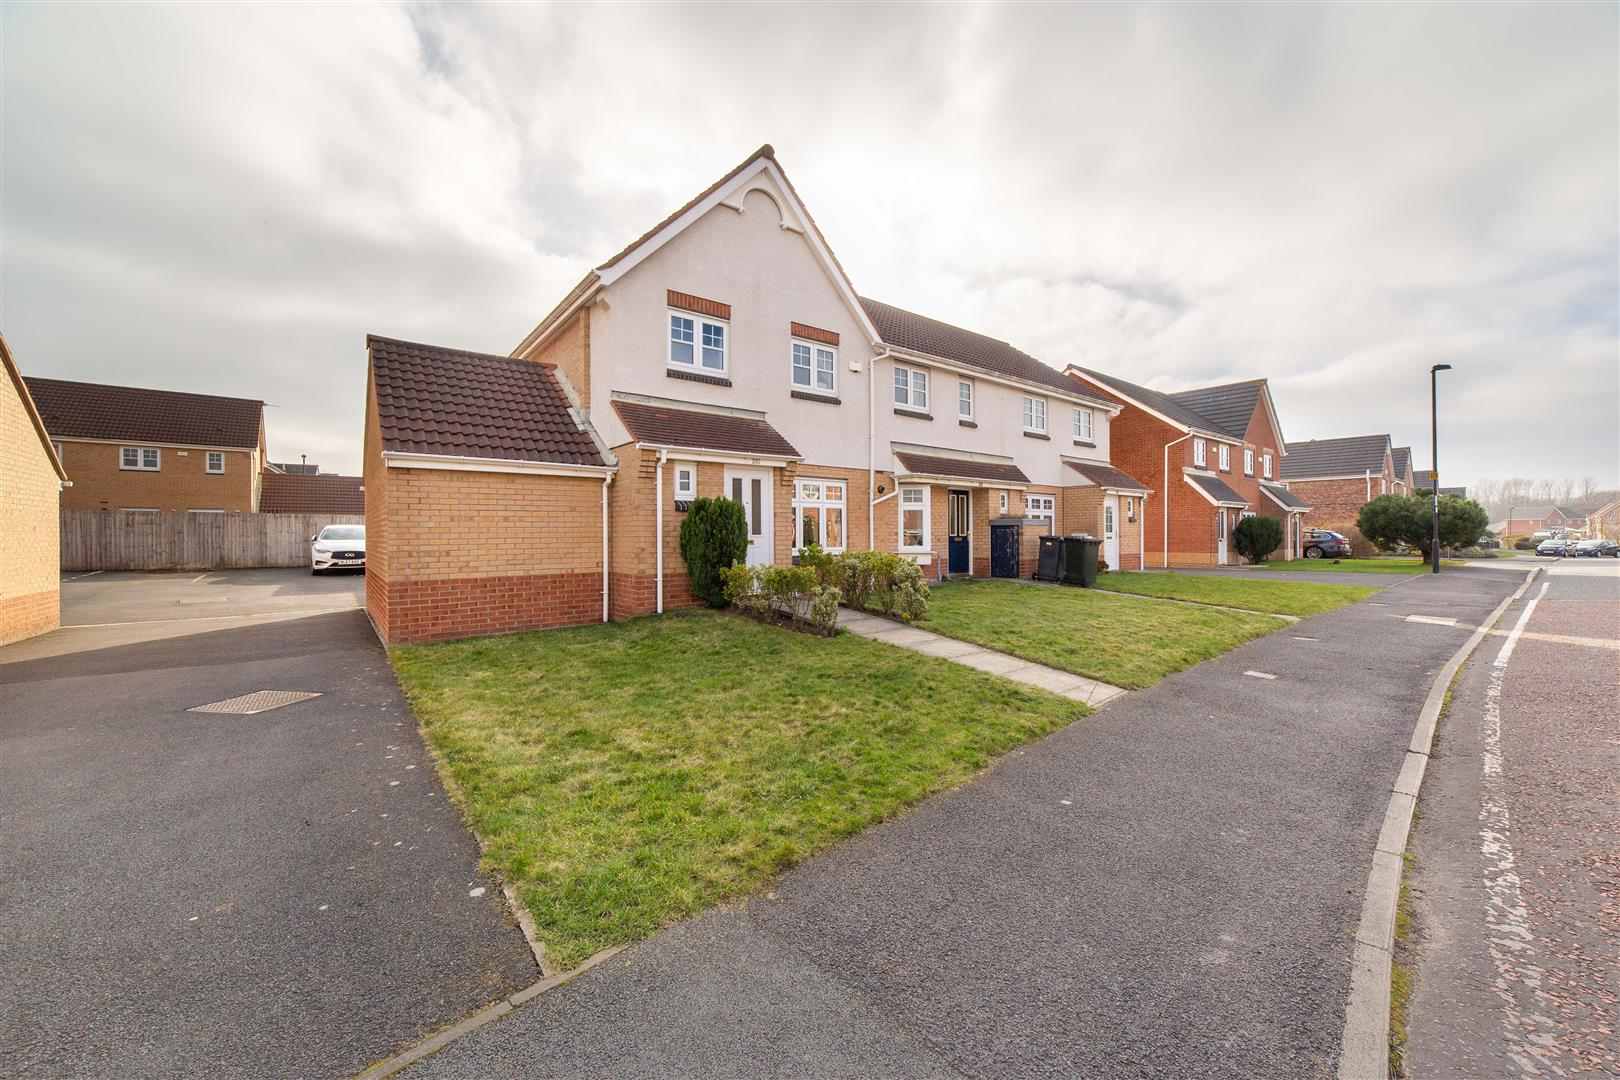 3 bed end of terrace house for sale in Longbenton, NE12 8UH, NE12